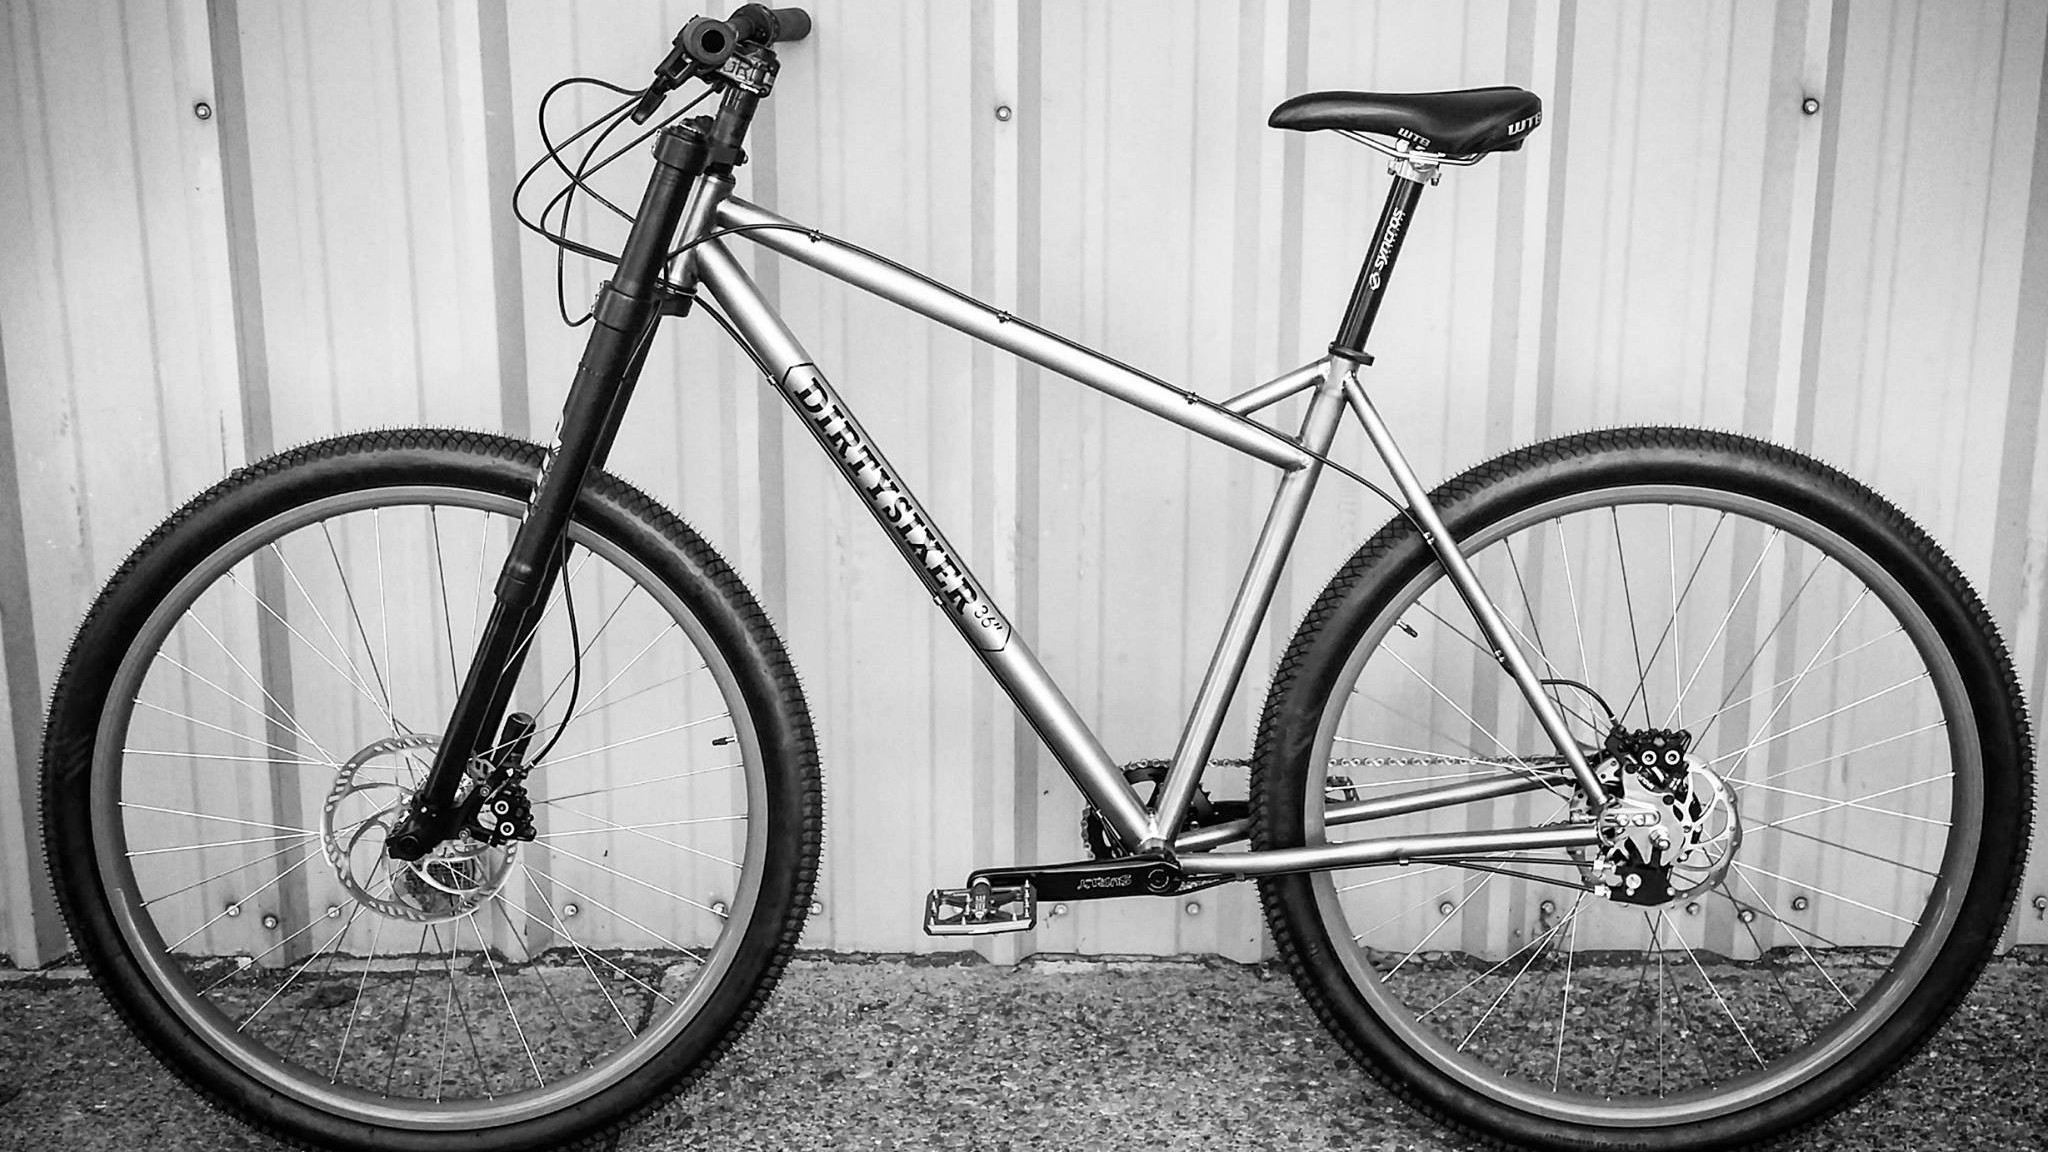 This prototype bike is built around a Rohloff drivetrain and an MRP inverted fork